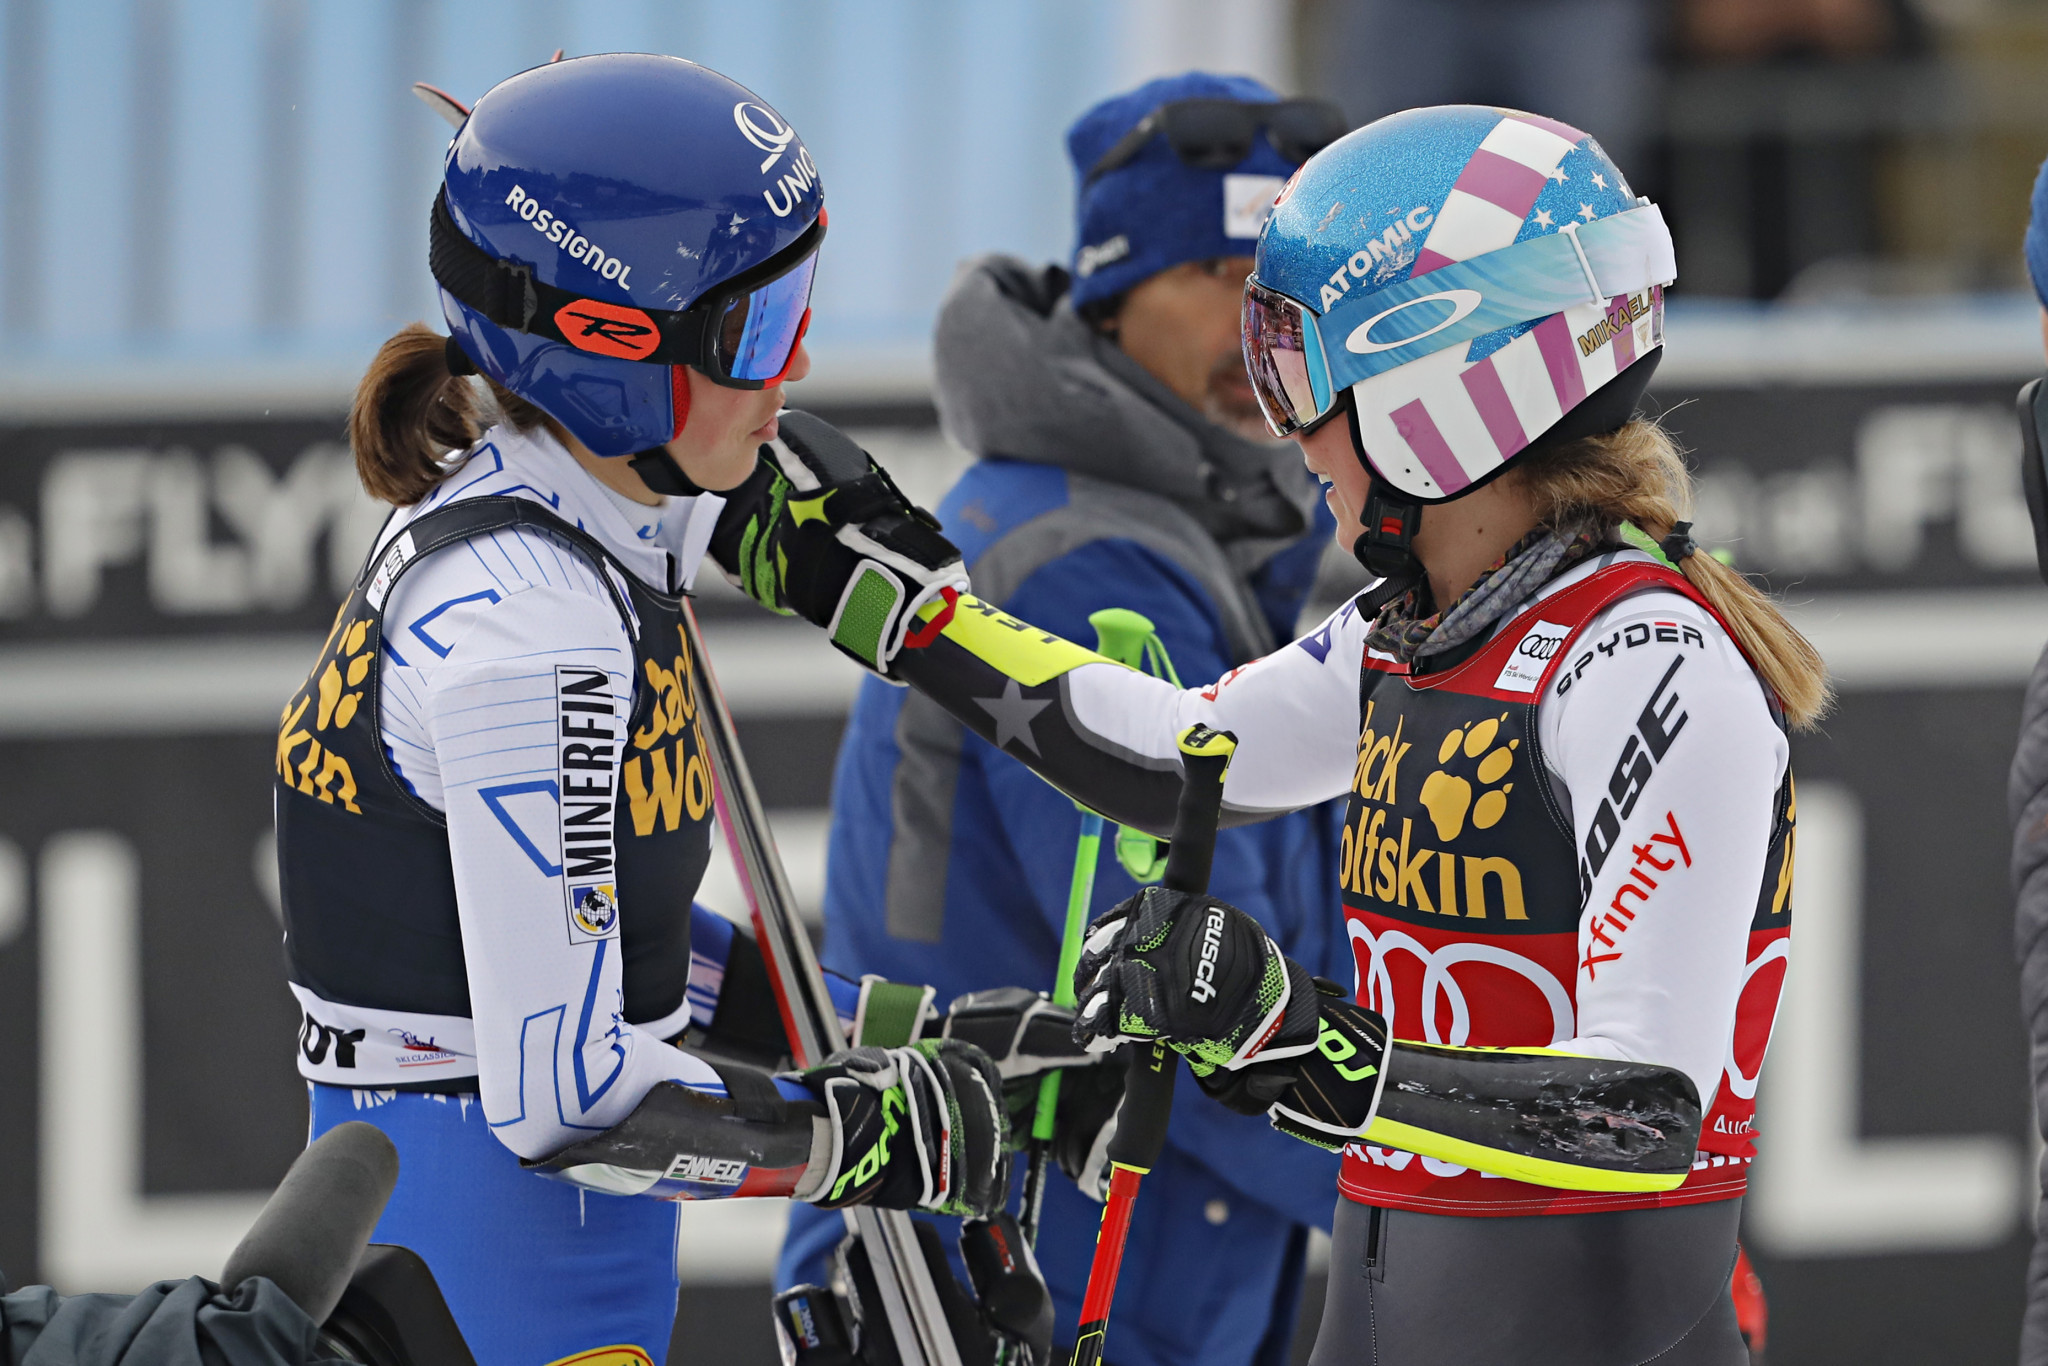 Petra Vlhová, left, and Mikaela Shiffrin, right, shared victory at the FIS Alpine Skiing World Cup in Maribor ©Getty Images